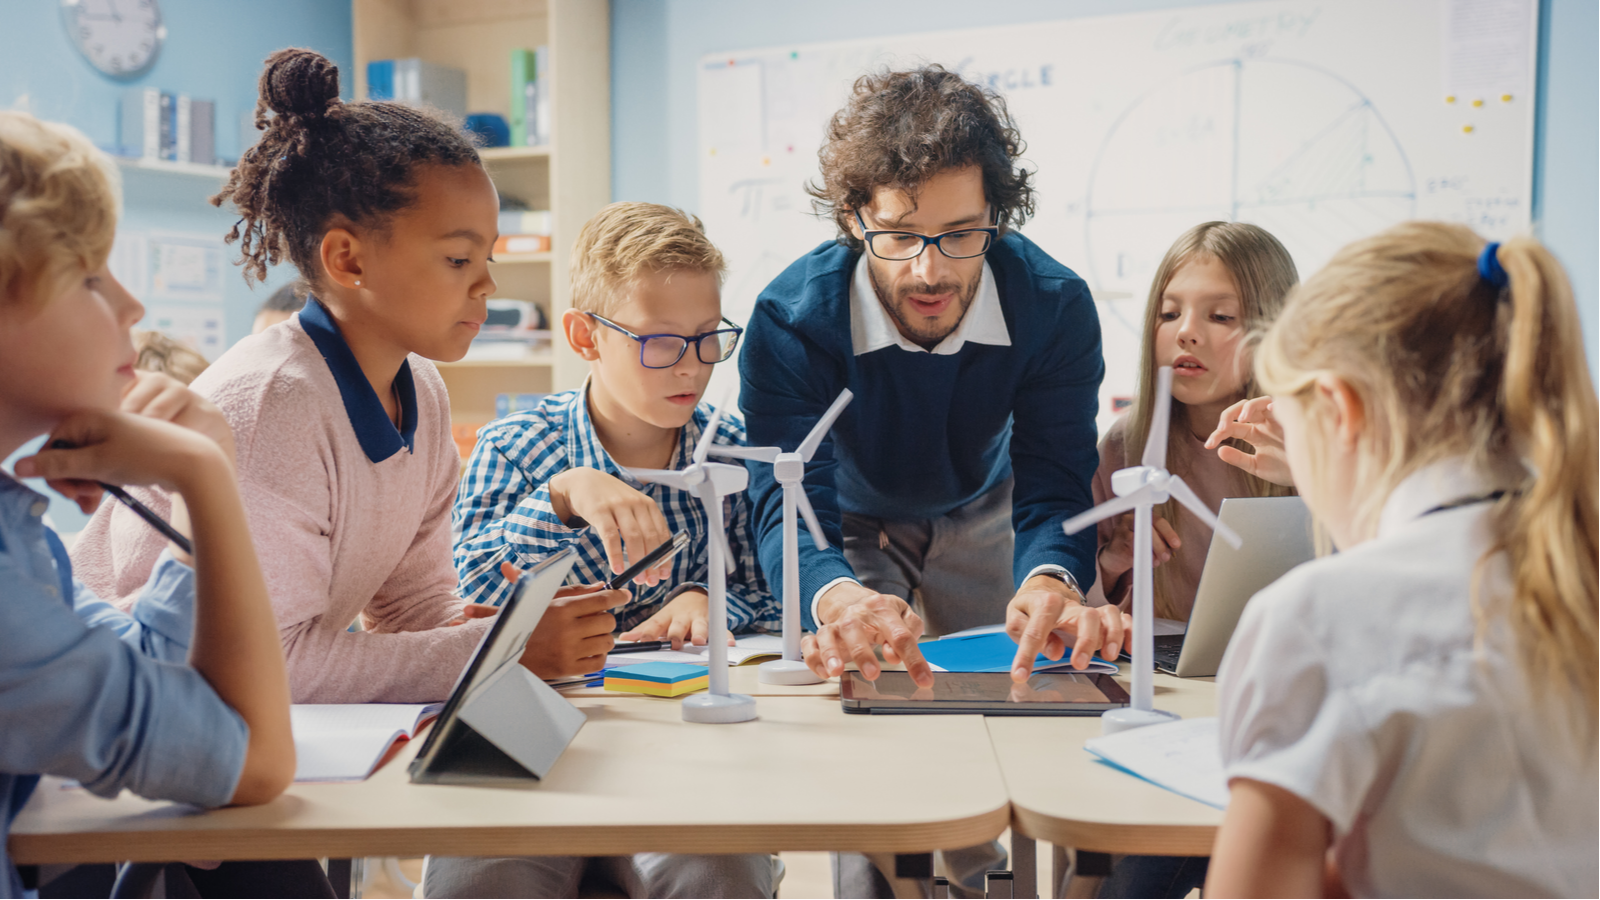 Engineering Design Challenges in the Classroom